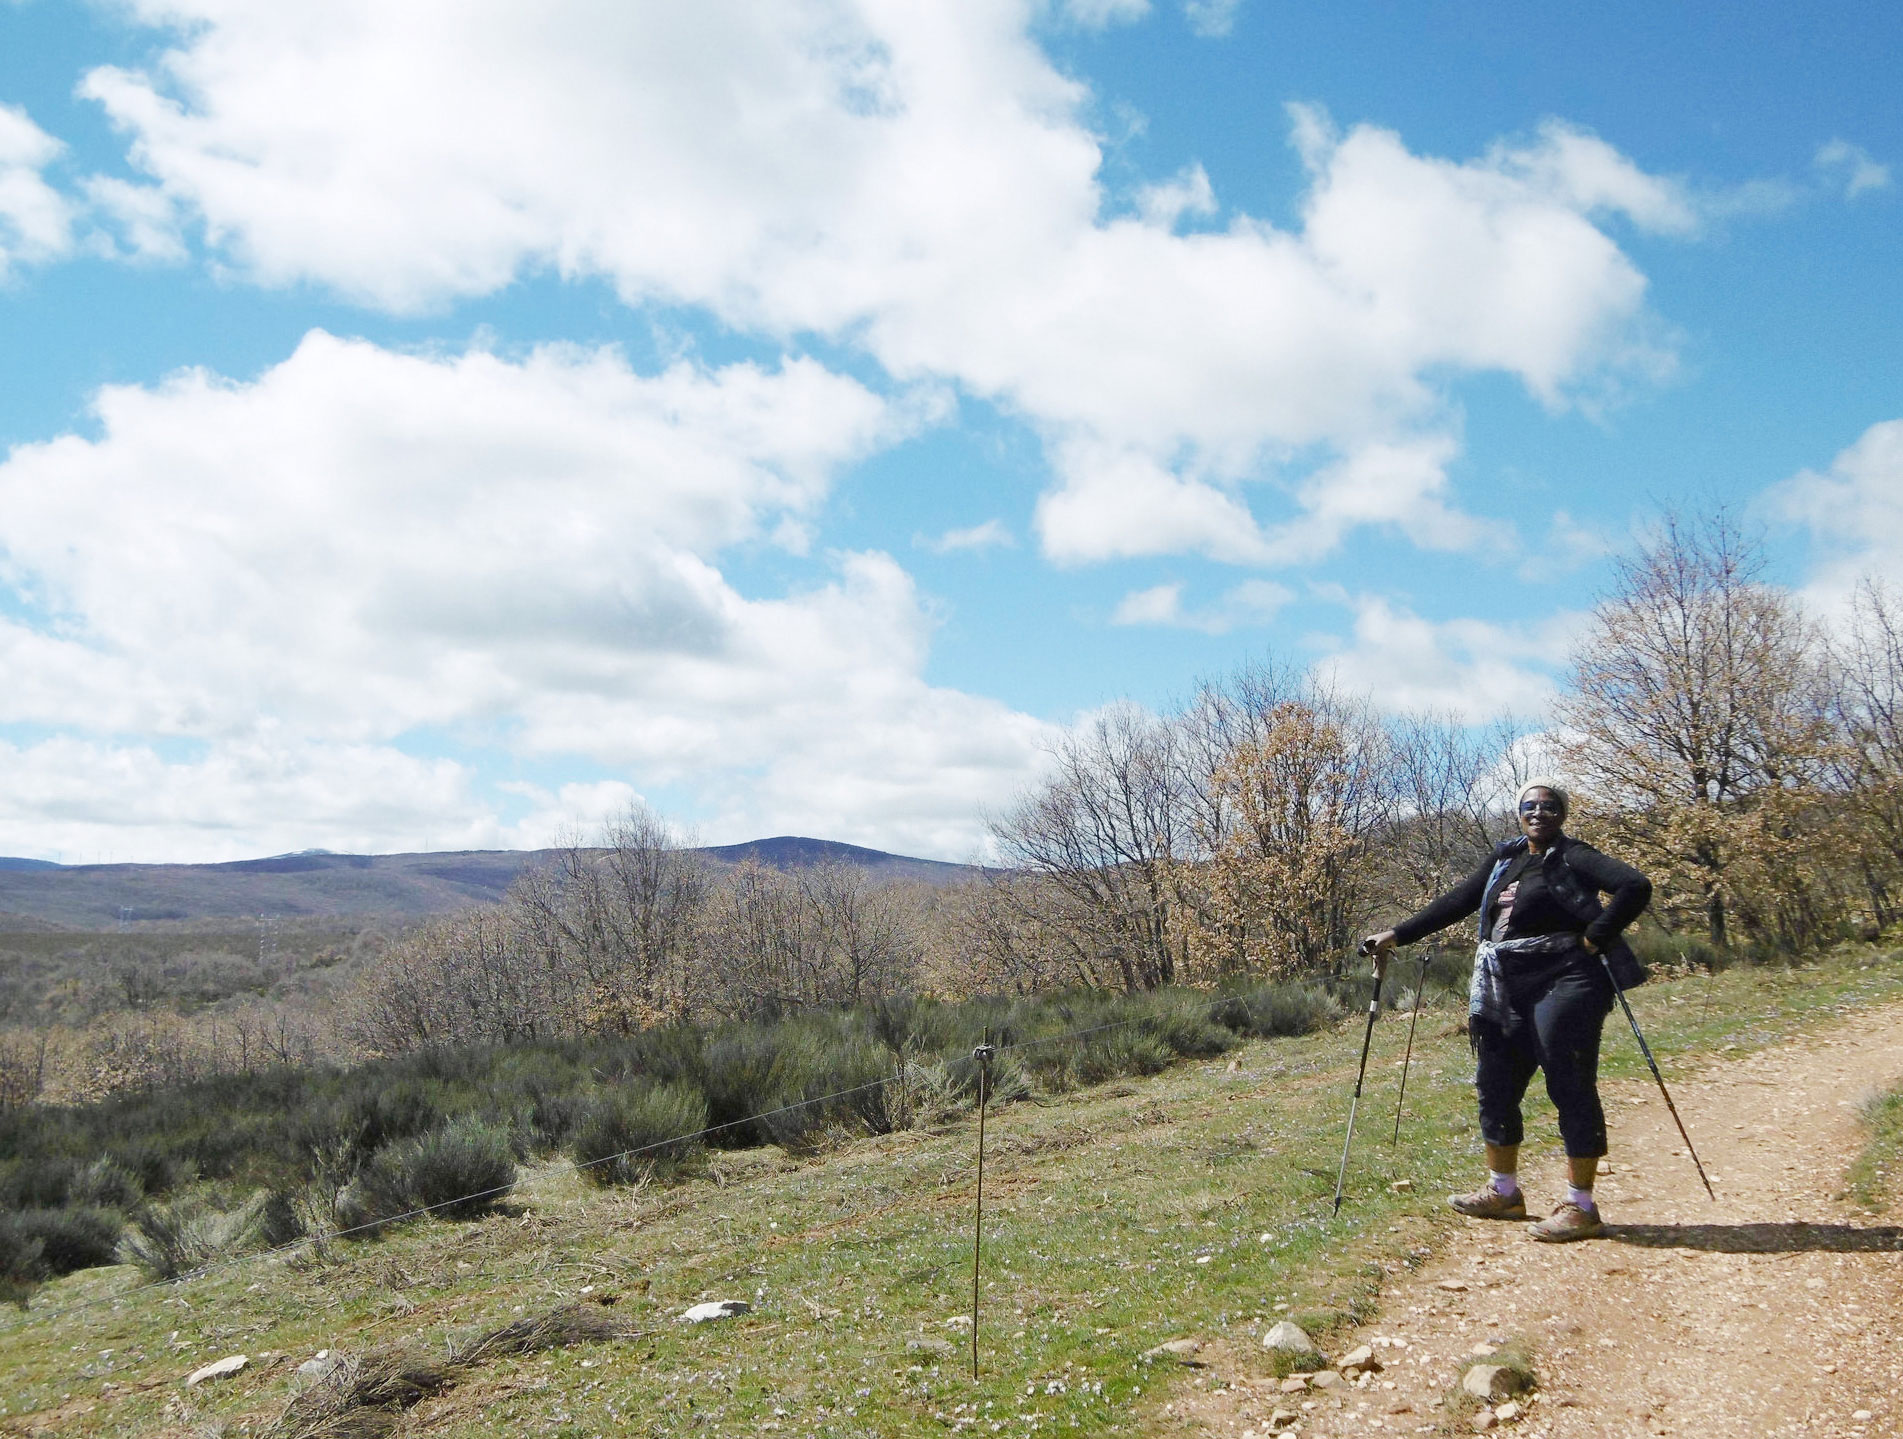 Camino de Santiago - April 4, 2016